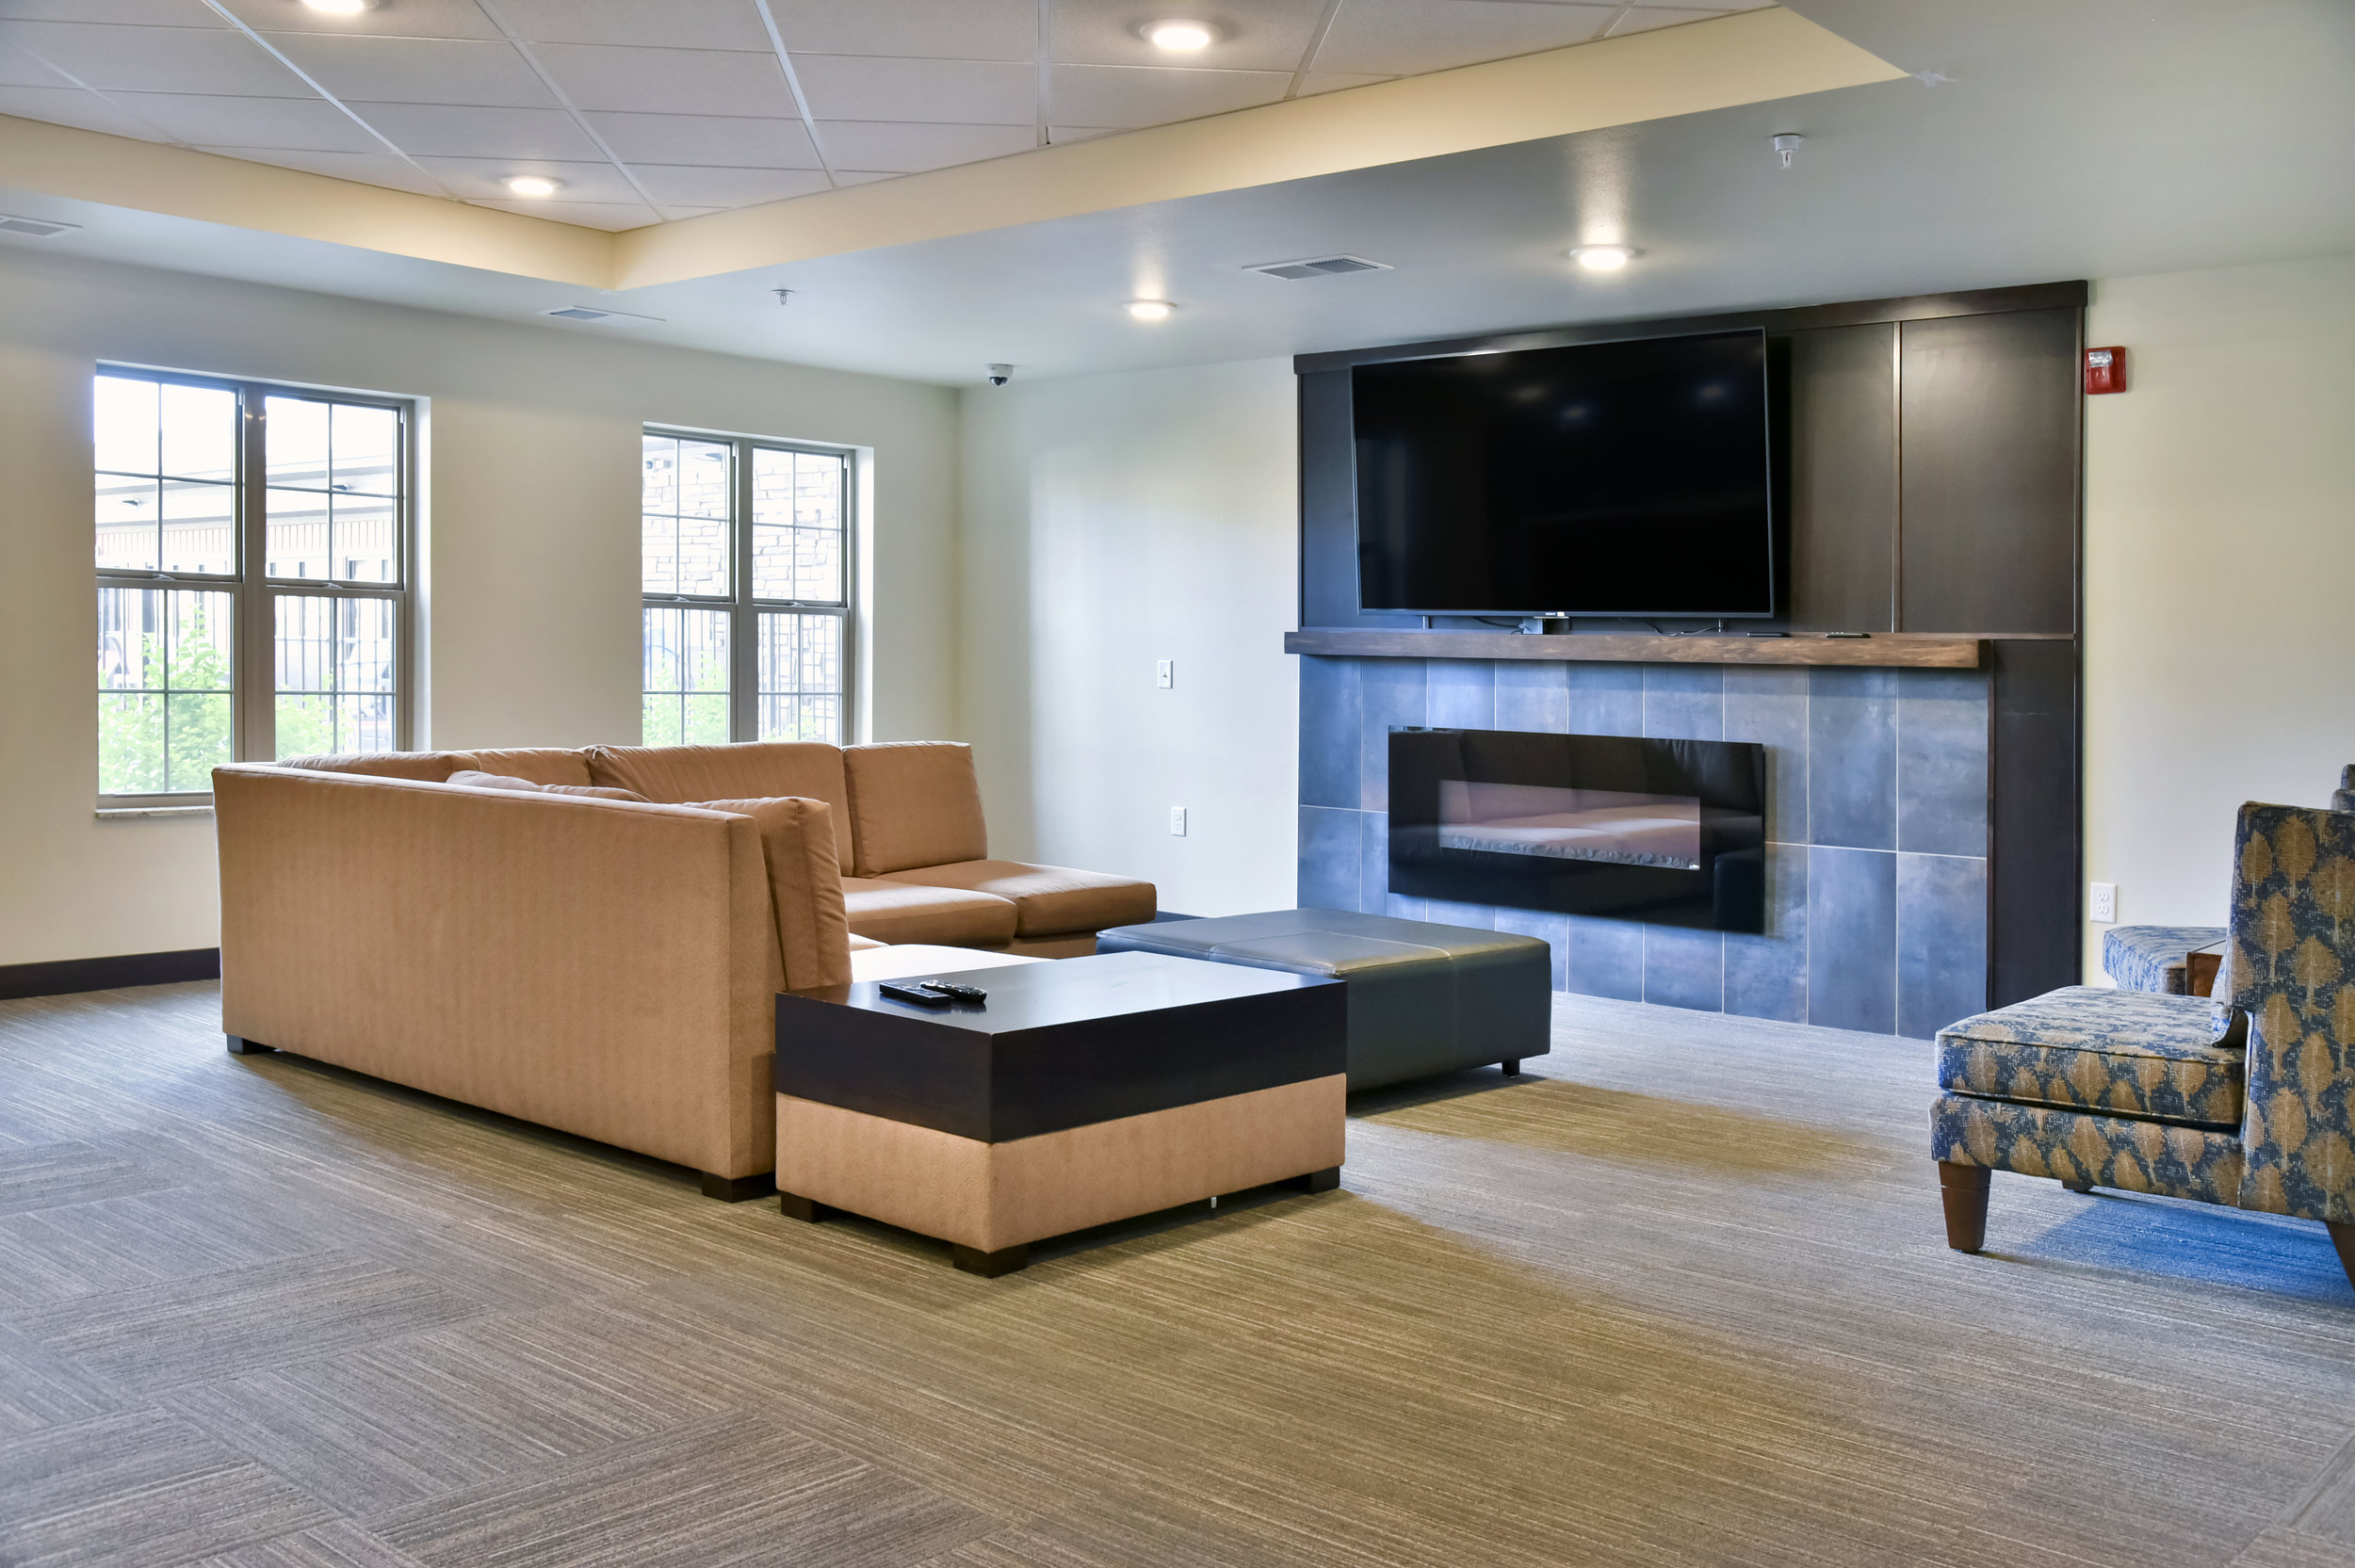 24 Catch Up on Some Shows or The Big Game Next to the Community Room Fireplace.jpg